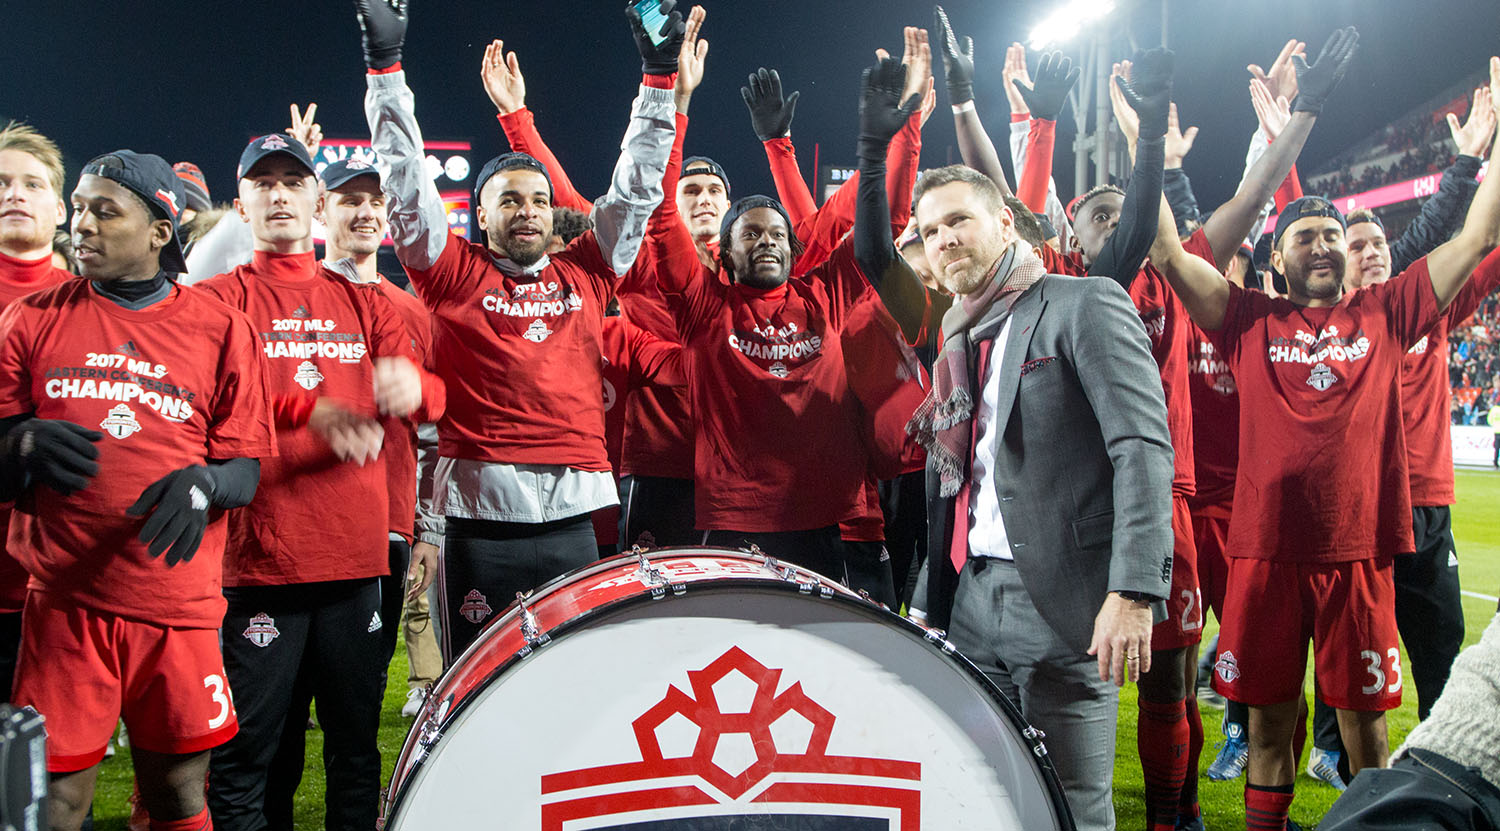 Greg Vanney at the drum celebrating the Eastern Conference final win with the south end supporters groups. Image by Dennis Marciniak of denMAR Media.